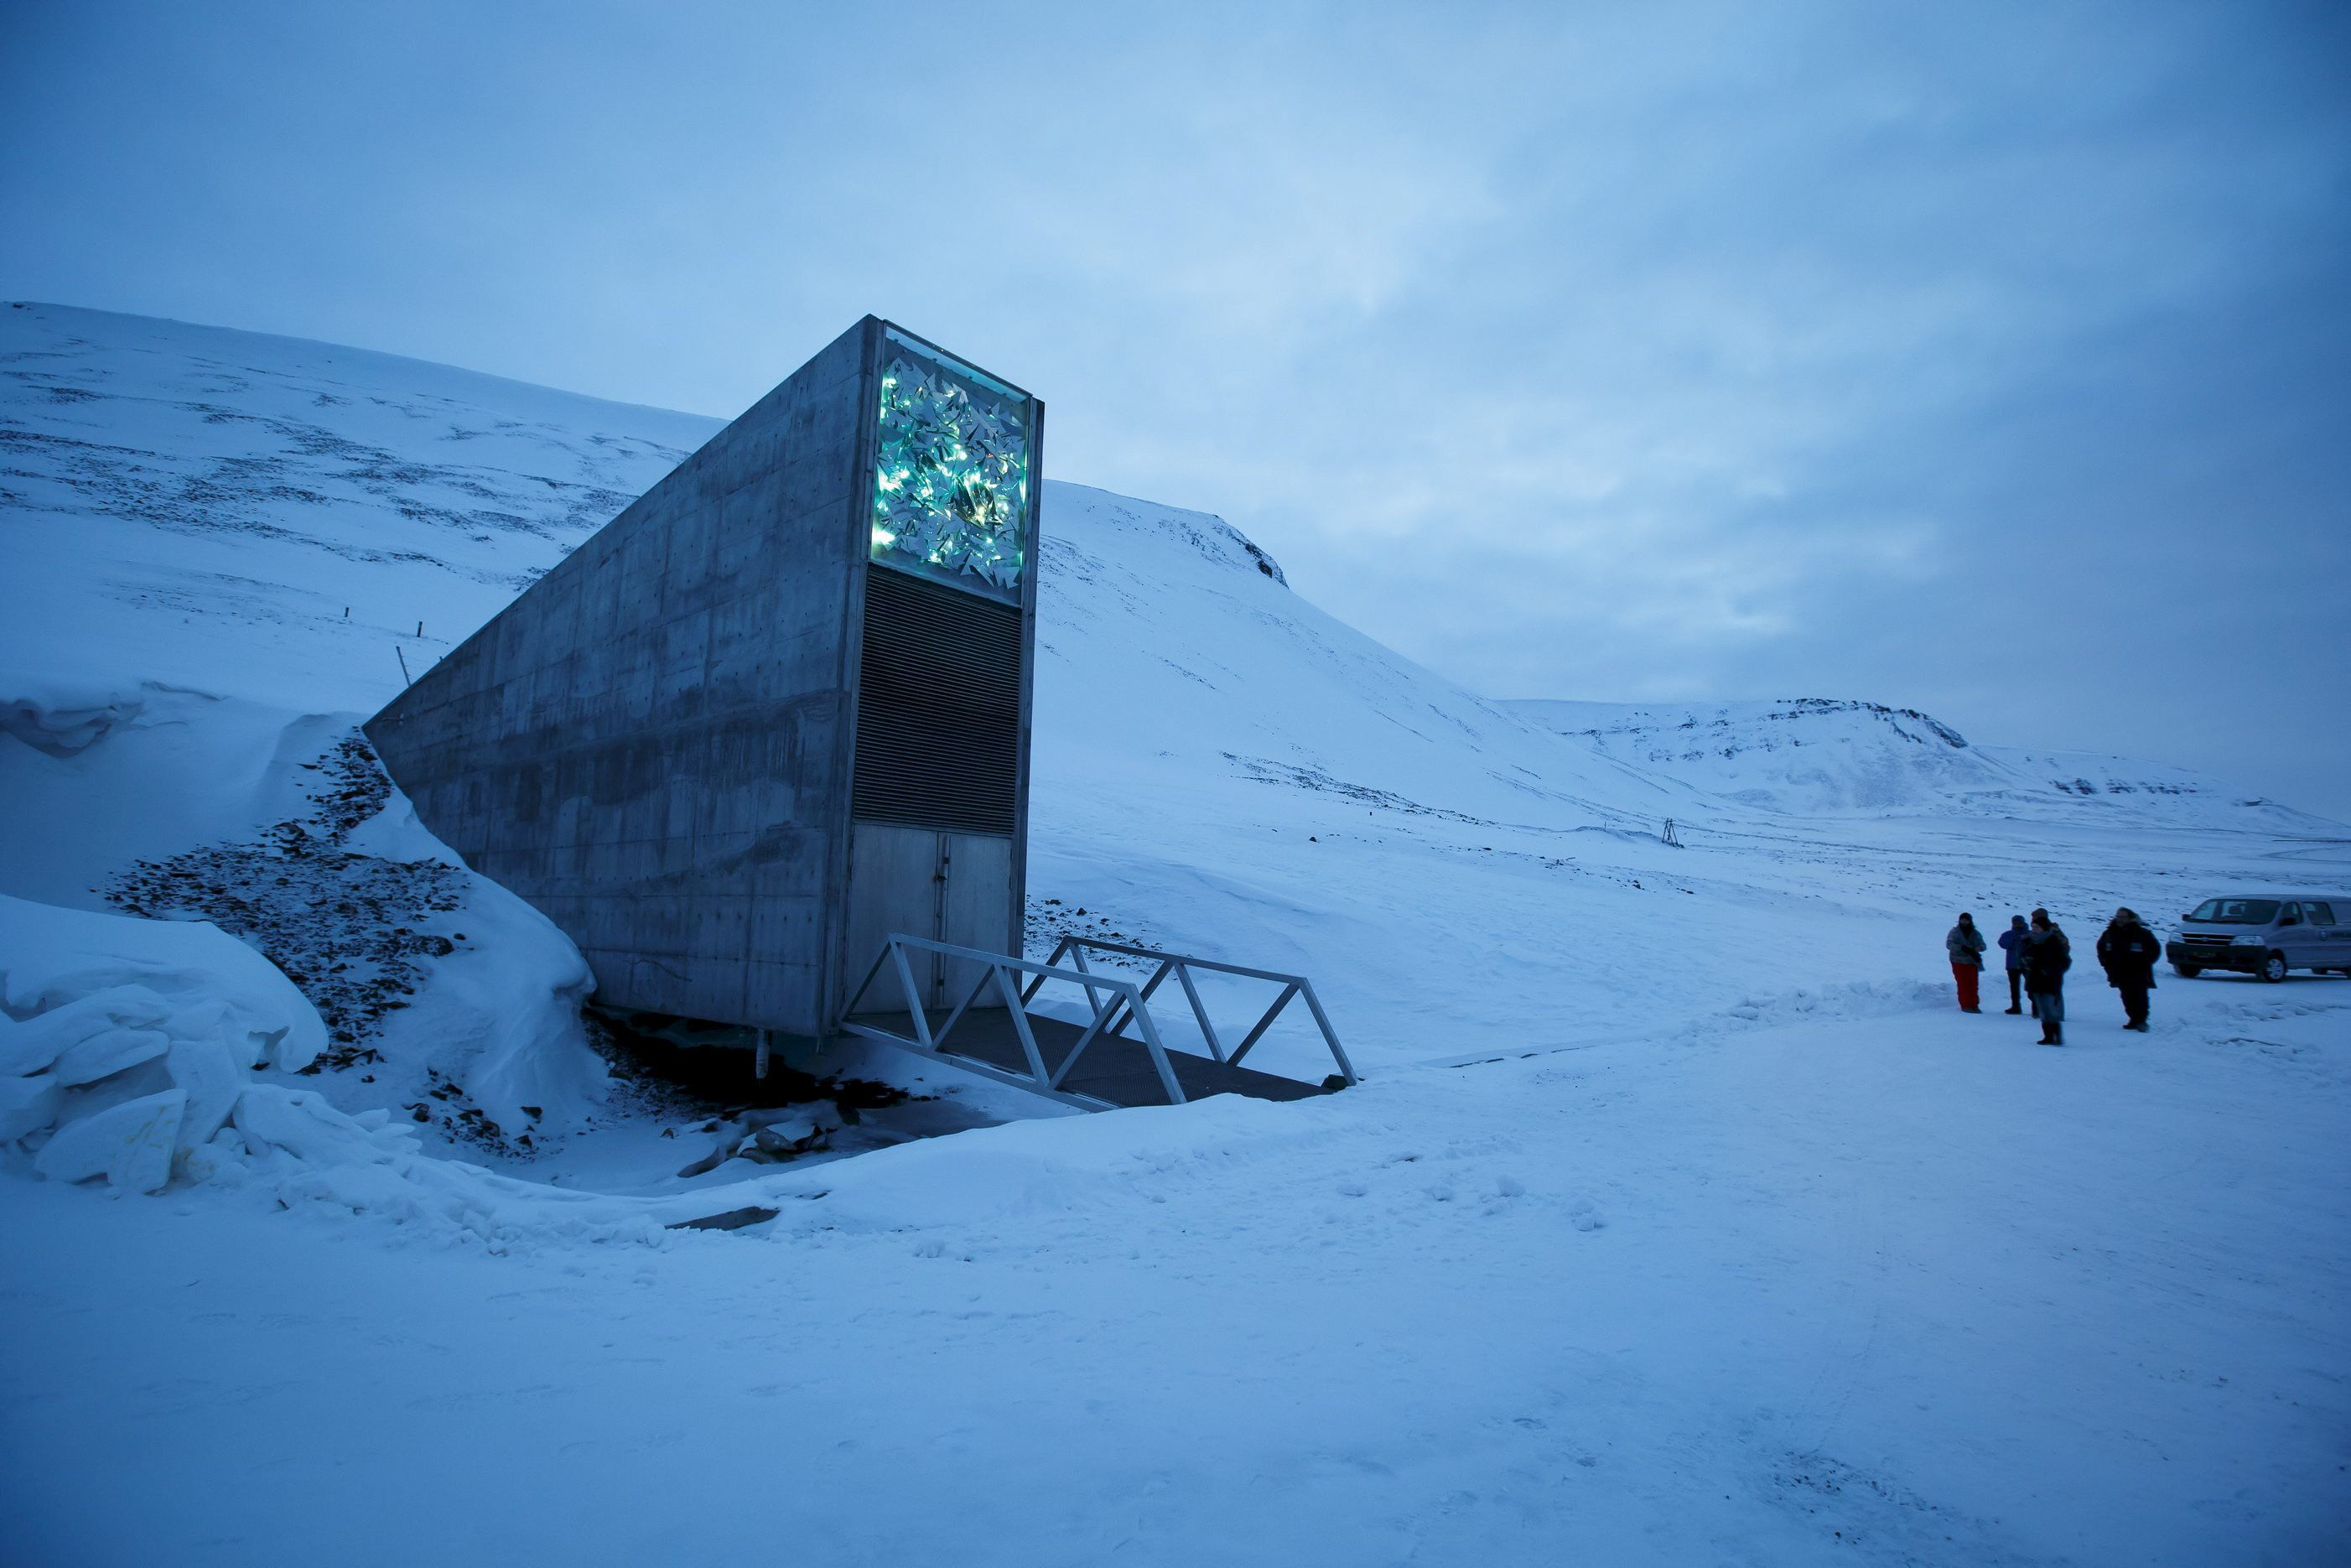 The entrance to the international gene bank Svalbard Global Seed Vault (SGSV) is pictured outside Longyearbyen on Spitsbergen, Norway, February 29, 2016. REUTERS/Heiko Junge/NTB Scanpix      ATTENTION EDITORS - THIS PICTURE WAS PROVIDED BY A THIRD PARTY. THIS PICTURE IS DISTRIBUTED EXACTLY AS RECEIVED BY REUTERS, AS A SERVICE TO CLIENTS. NORWAY OUT. NO COMMERCIAL OR EDITORIAL SALES IN NORWAY.